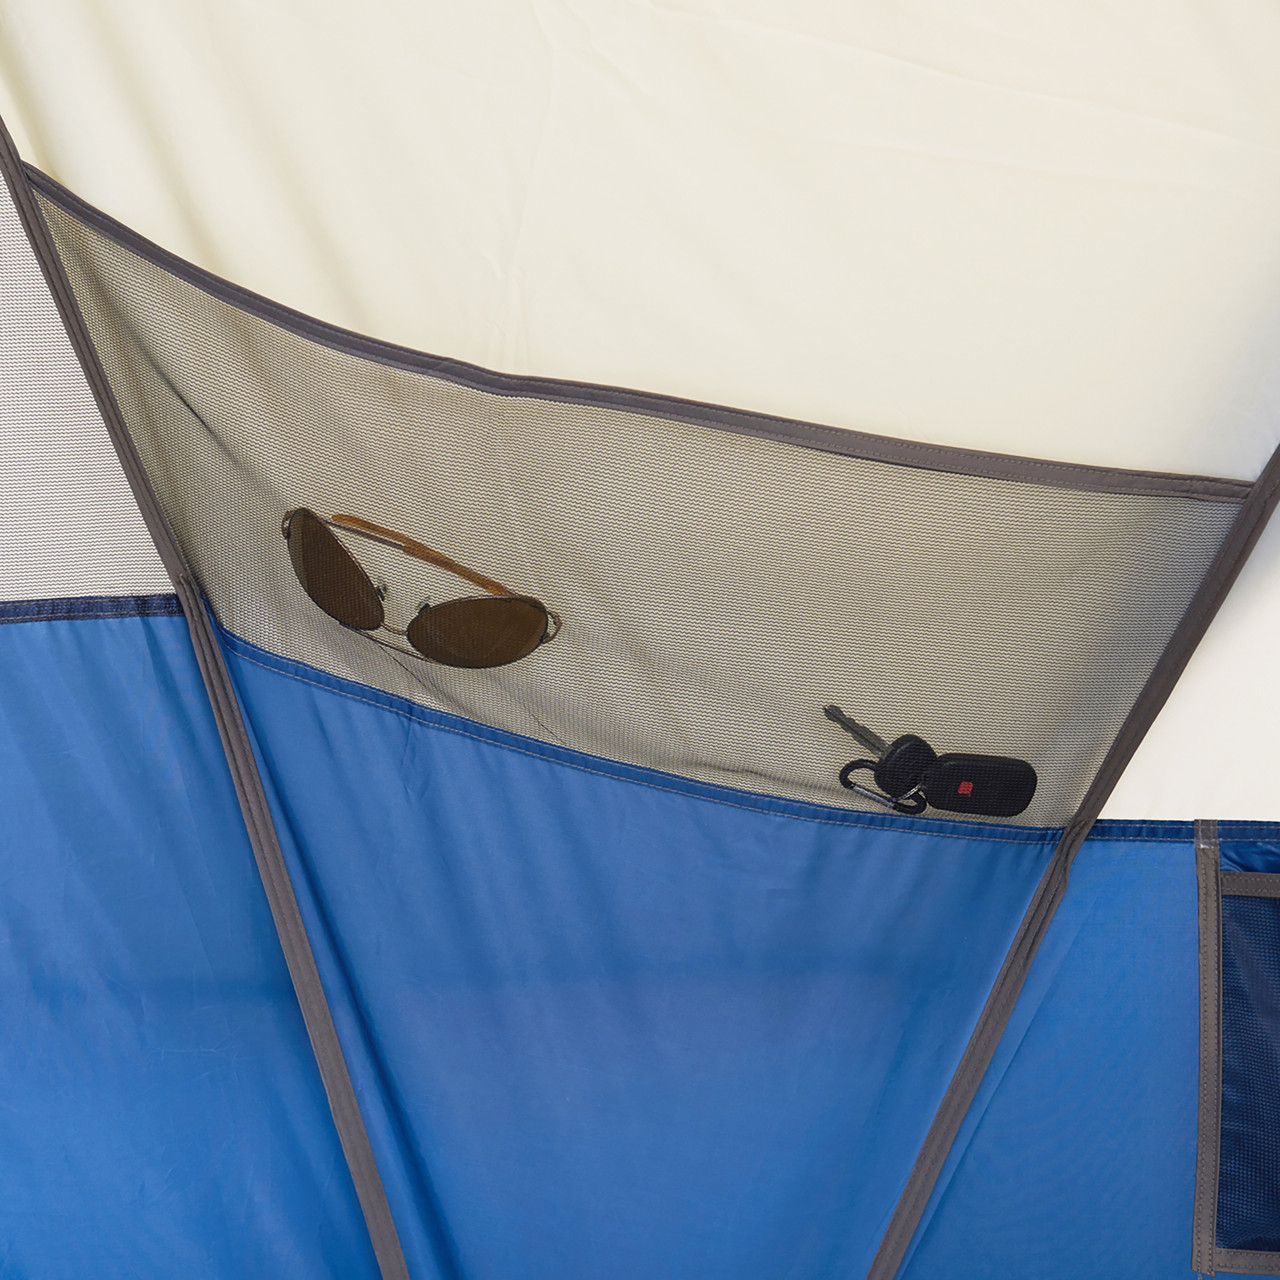 Interior of Wenzel Pinyon 10 Person Dome Tent, blue/white, showing mesh pocket